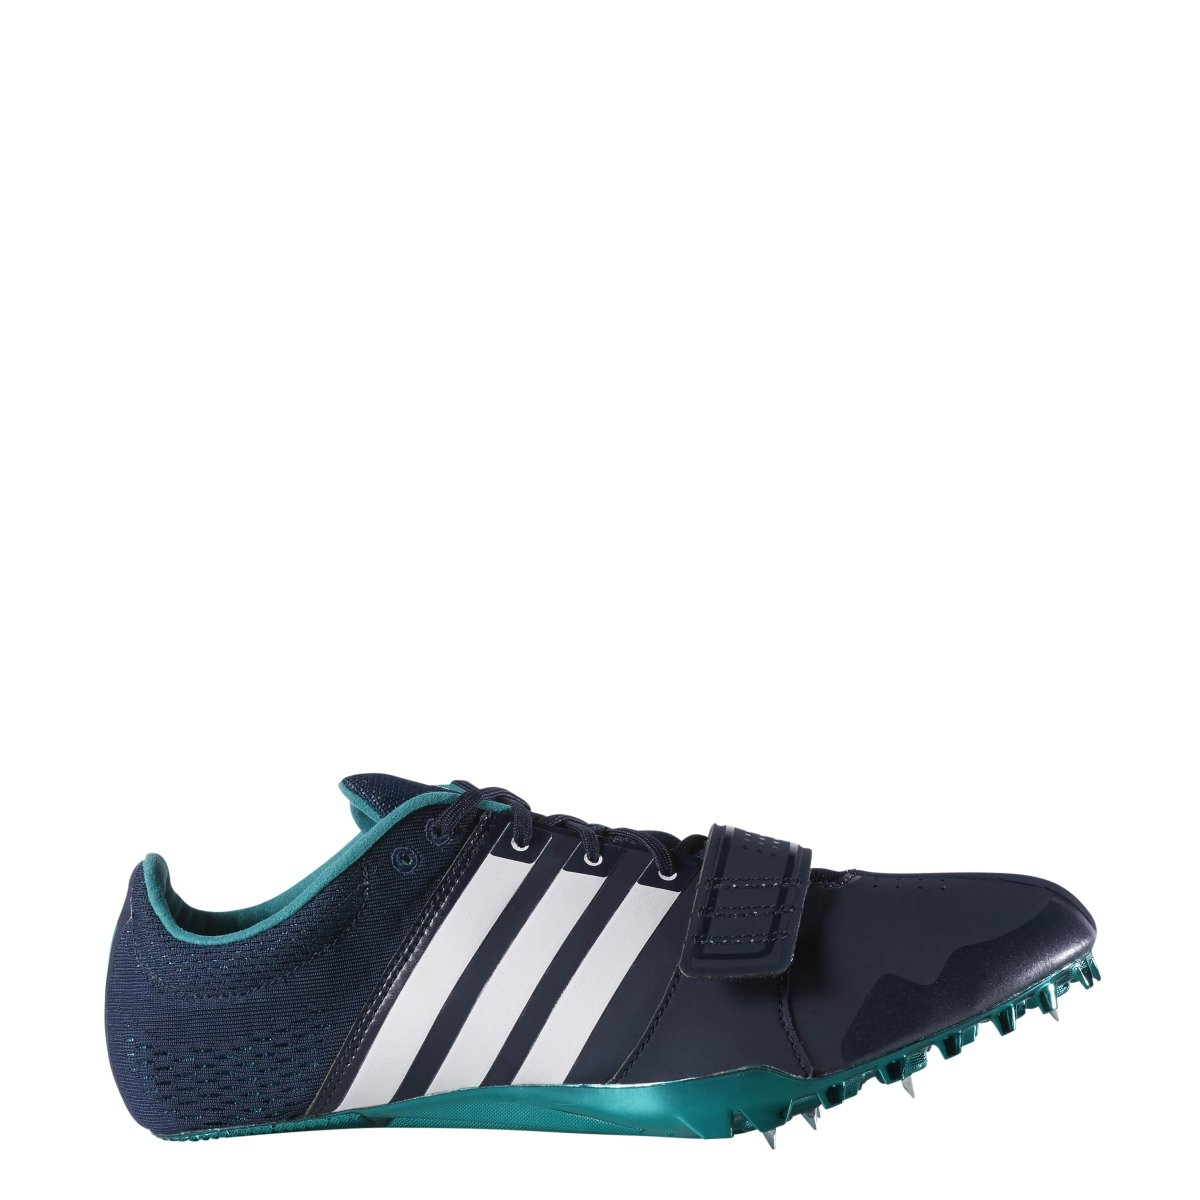 adidas Adizero Accelerator Running Shoe, Collegiate Navy/White/Green, 11.5 M US